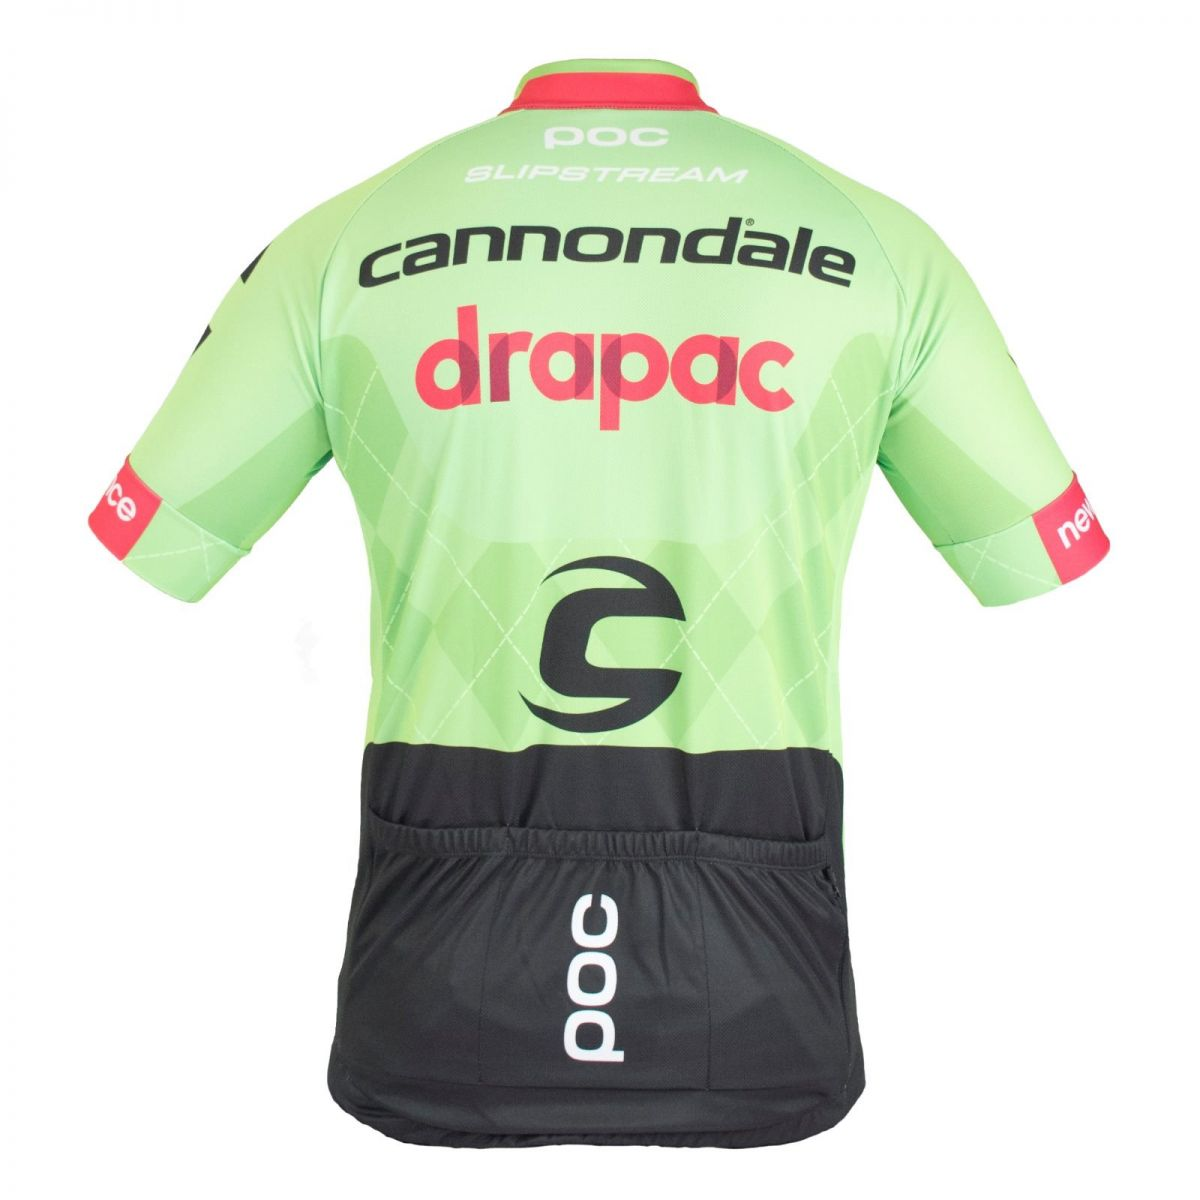 Camiseta Ciclismo Refactor World Tour Cannondale 2017